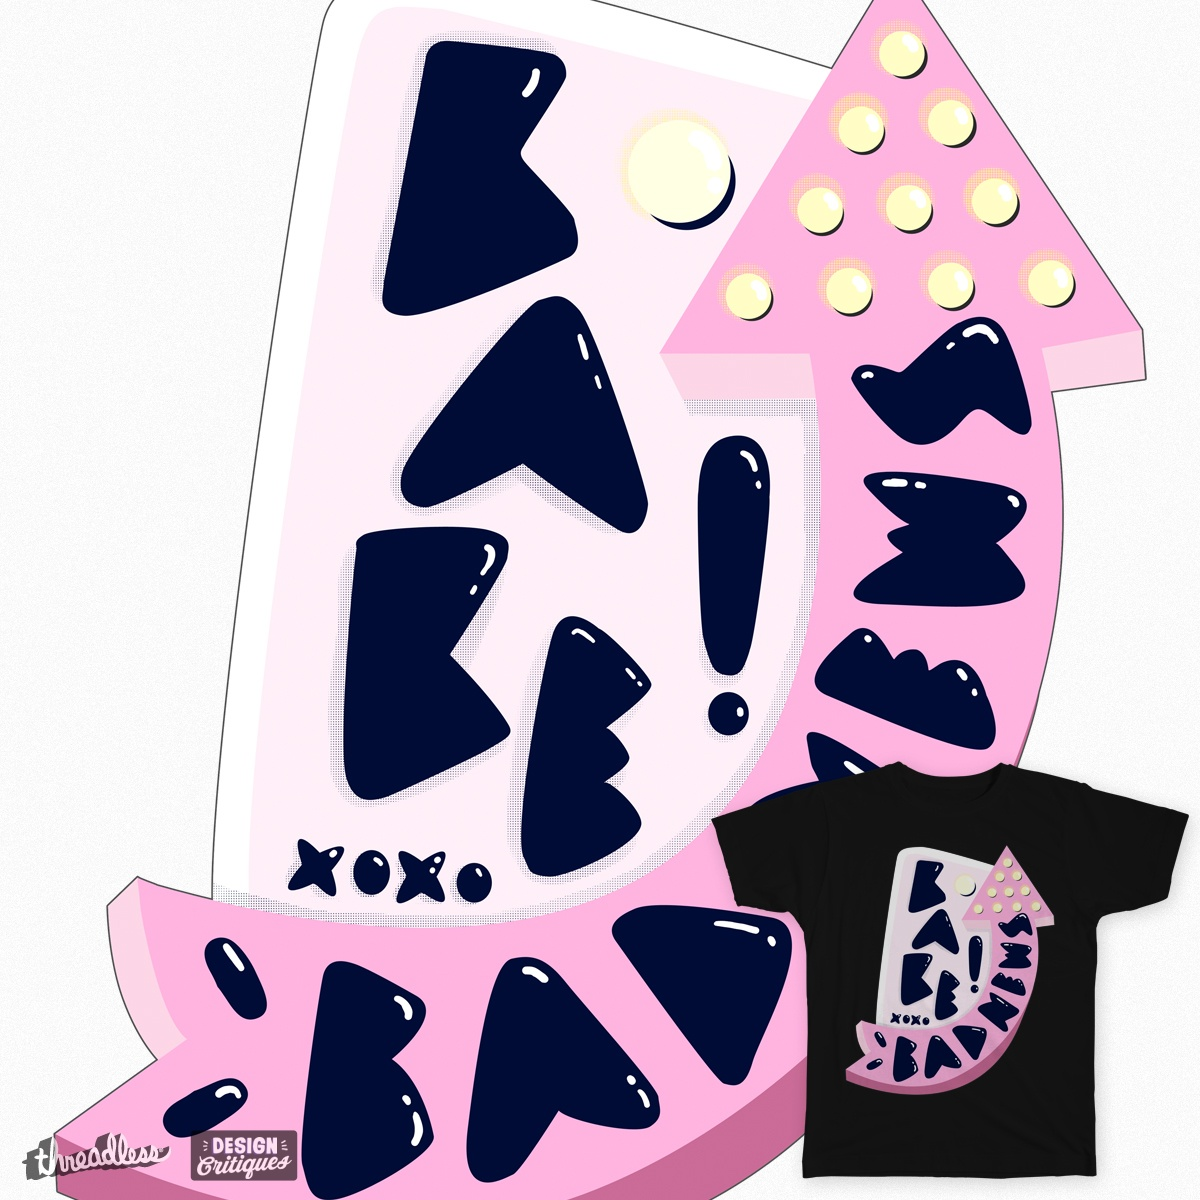 Score Bad news babe by siyi on Threadless.